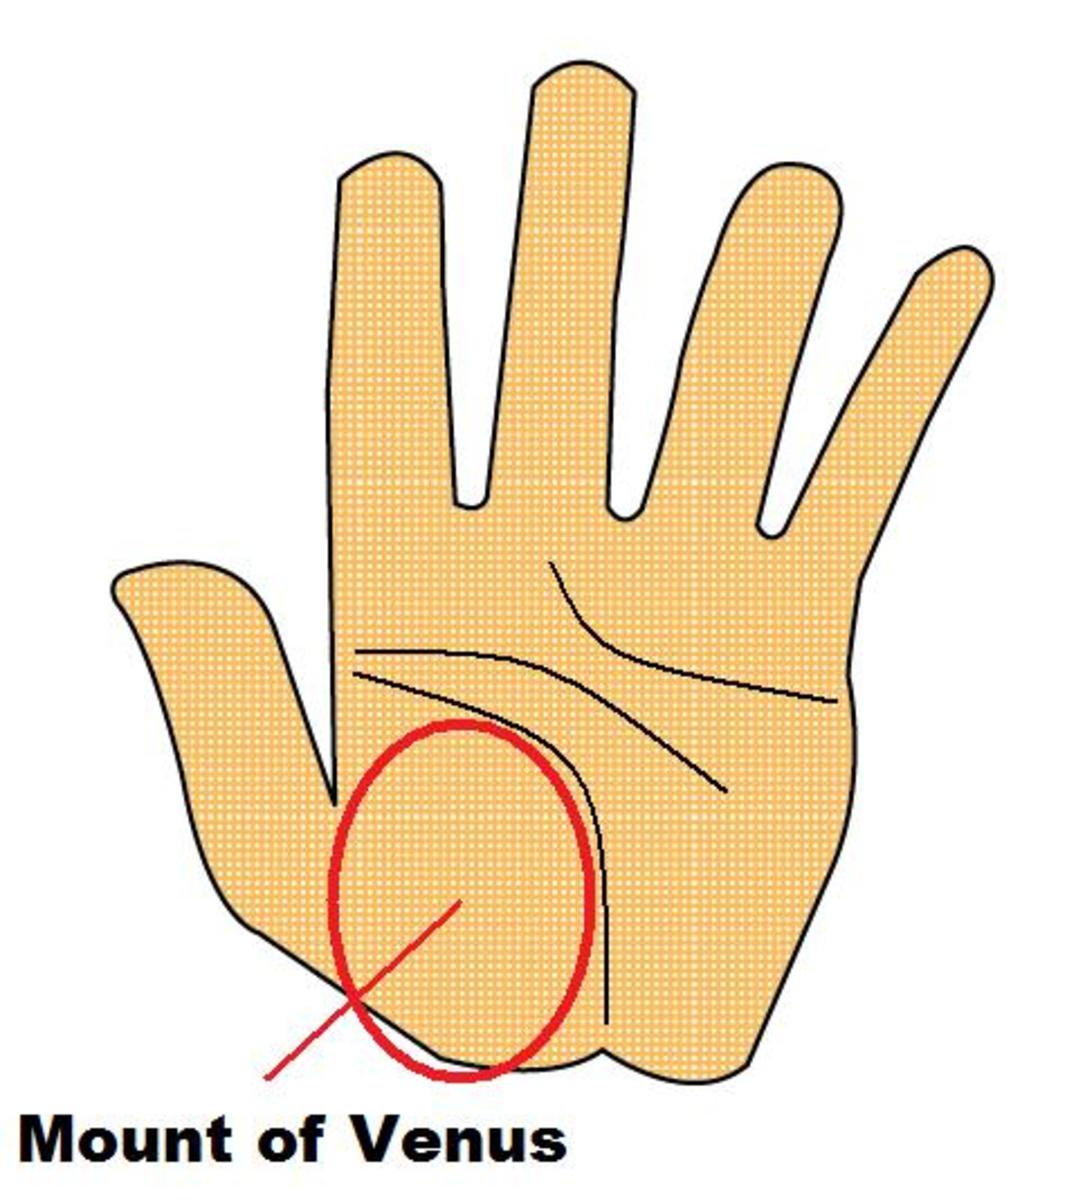 Mount of Venus on the Palm